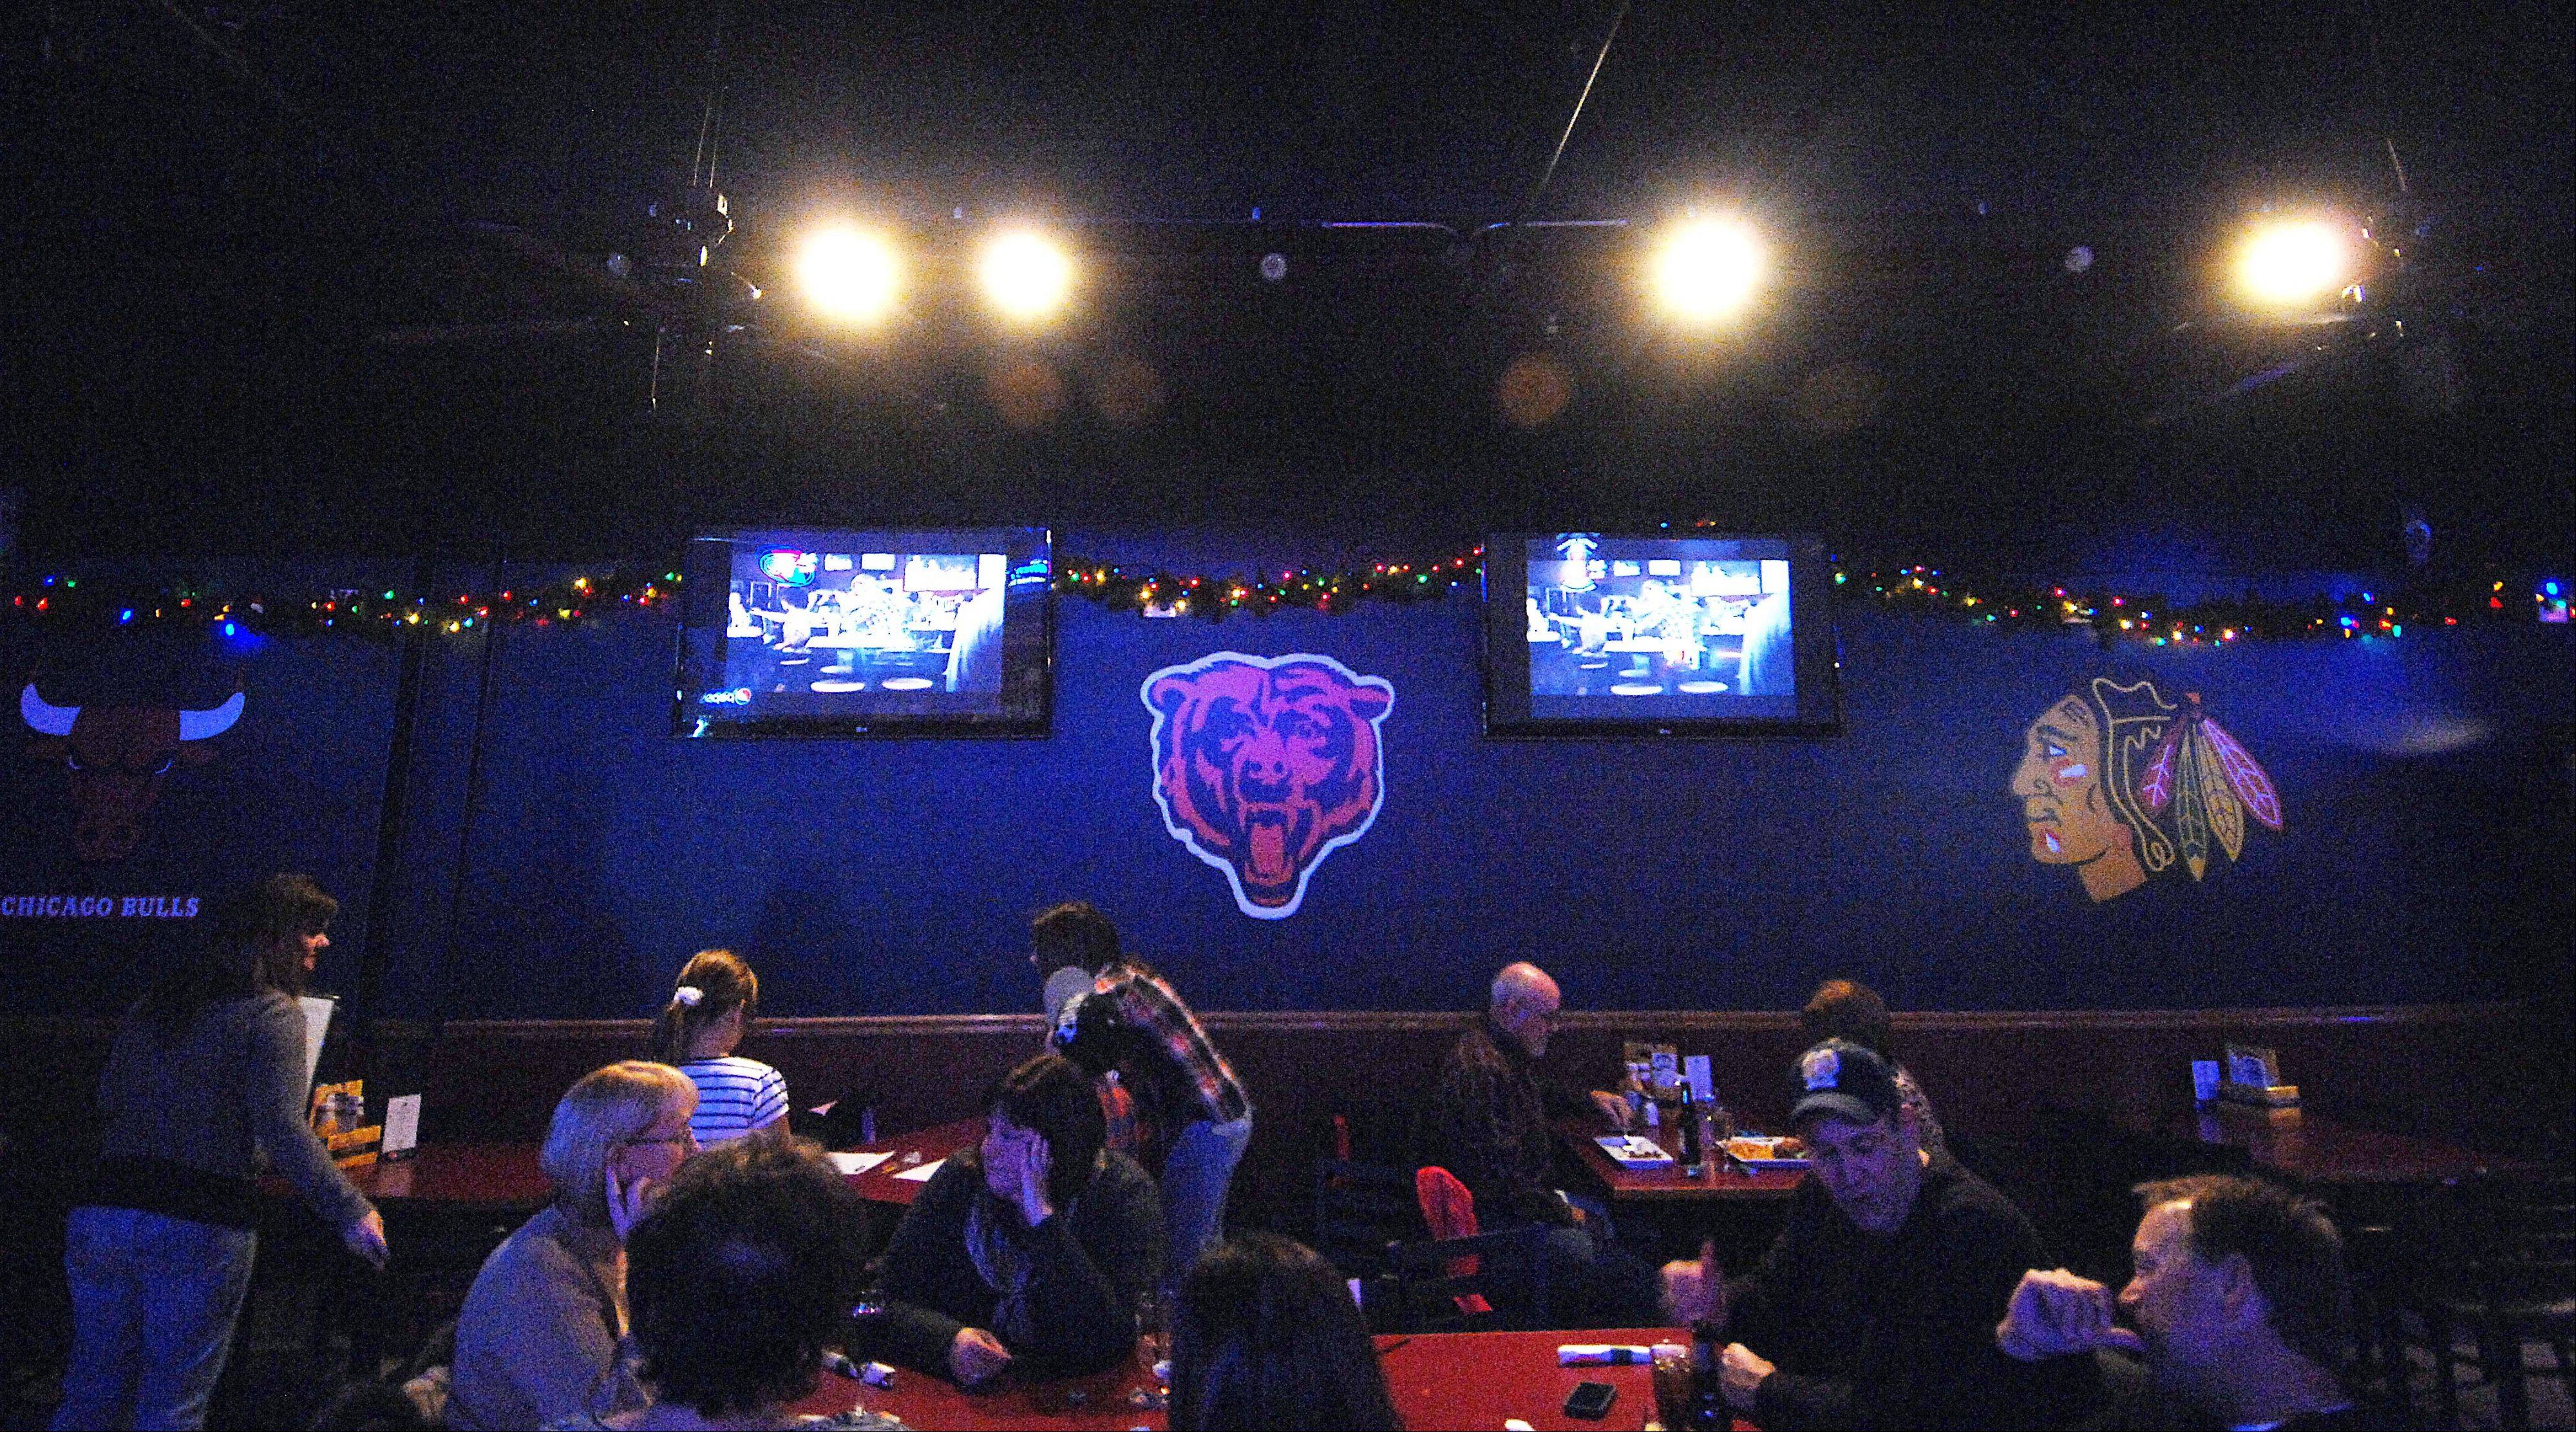 Chicago pro sports team logos painted on the walls and plenty of TV screens provide the main d�cor of the Chubby Bullfrog.